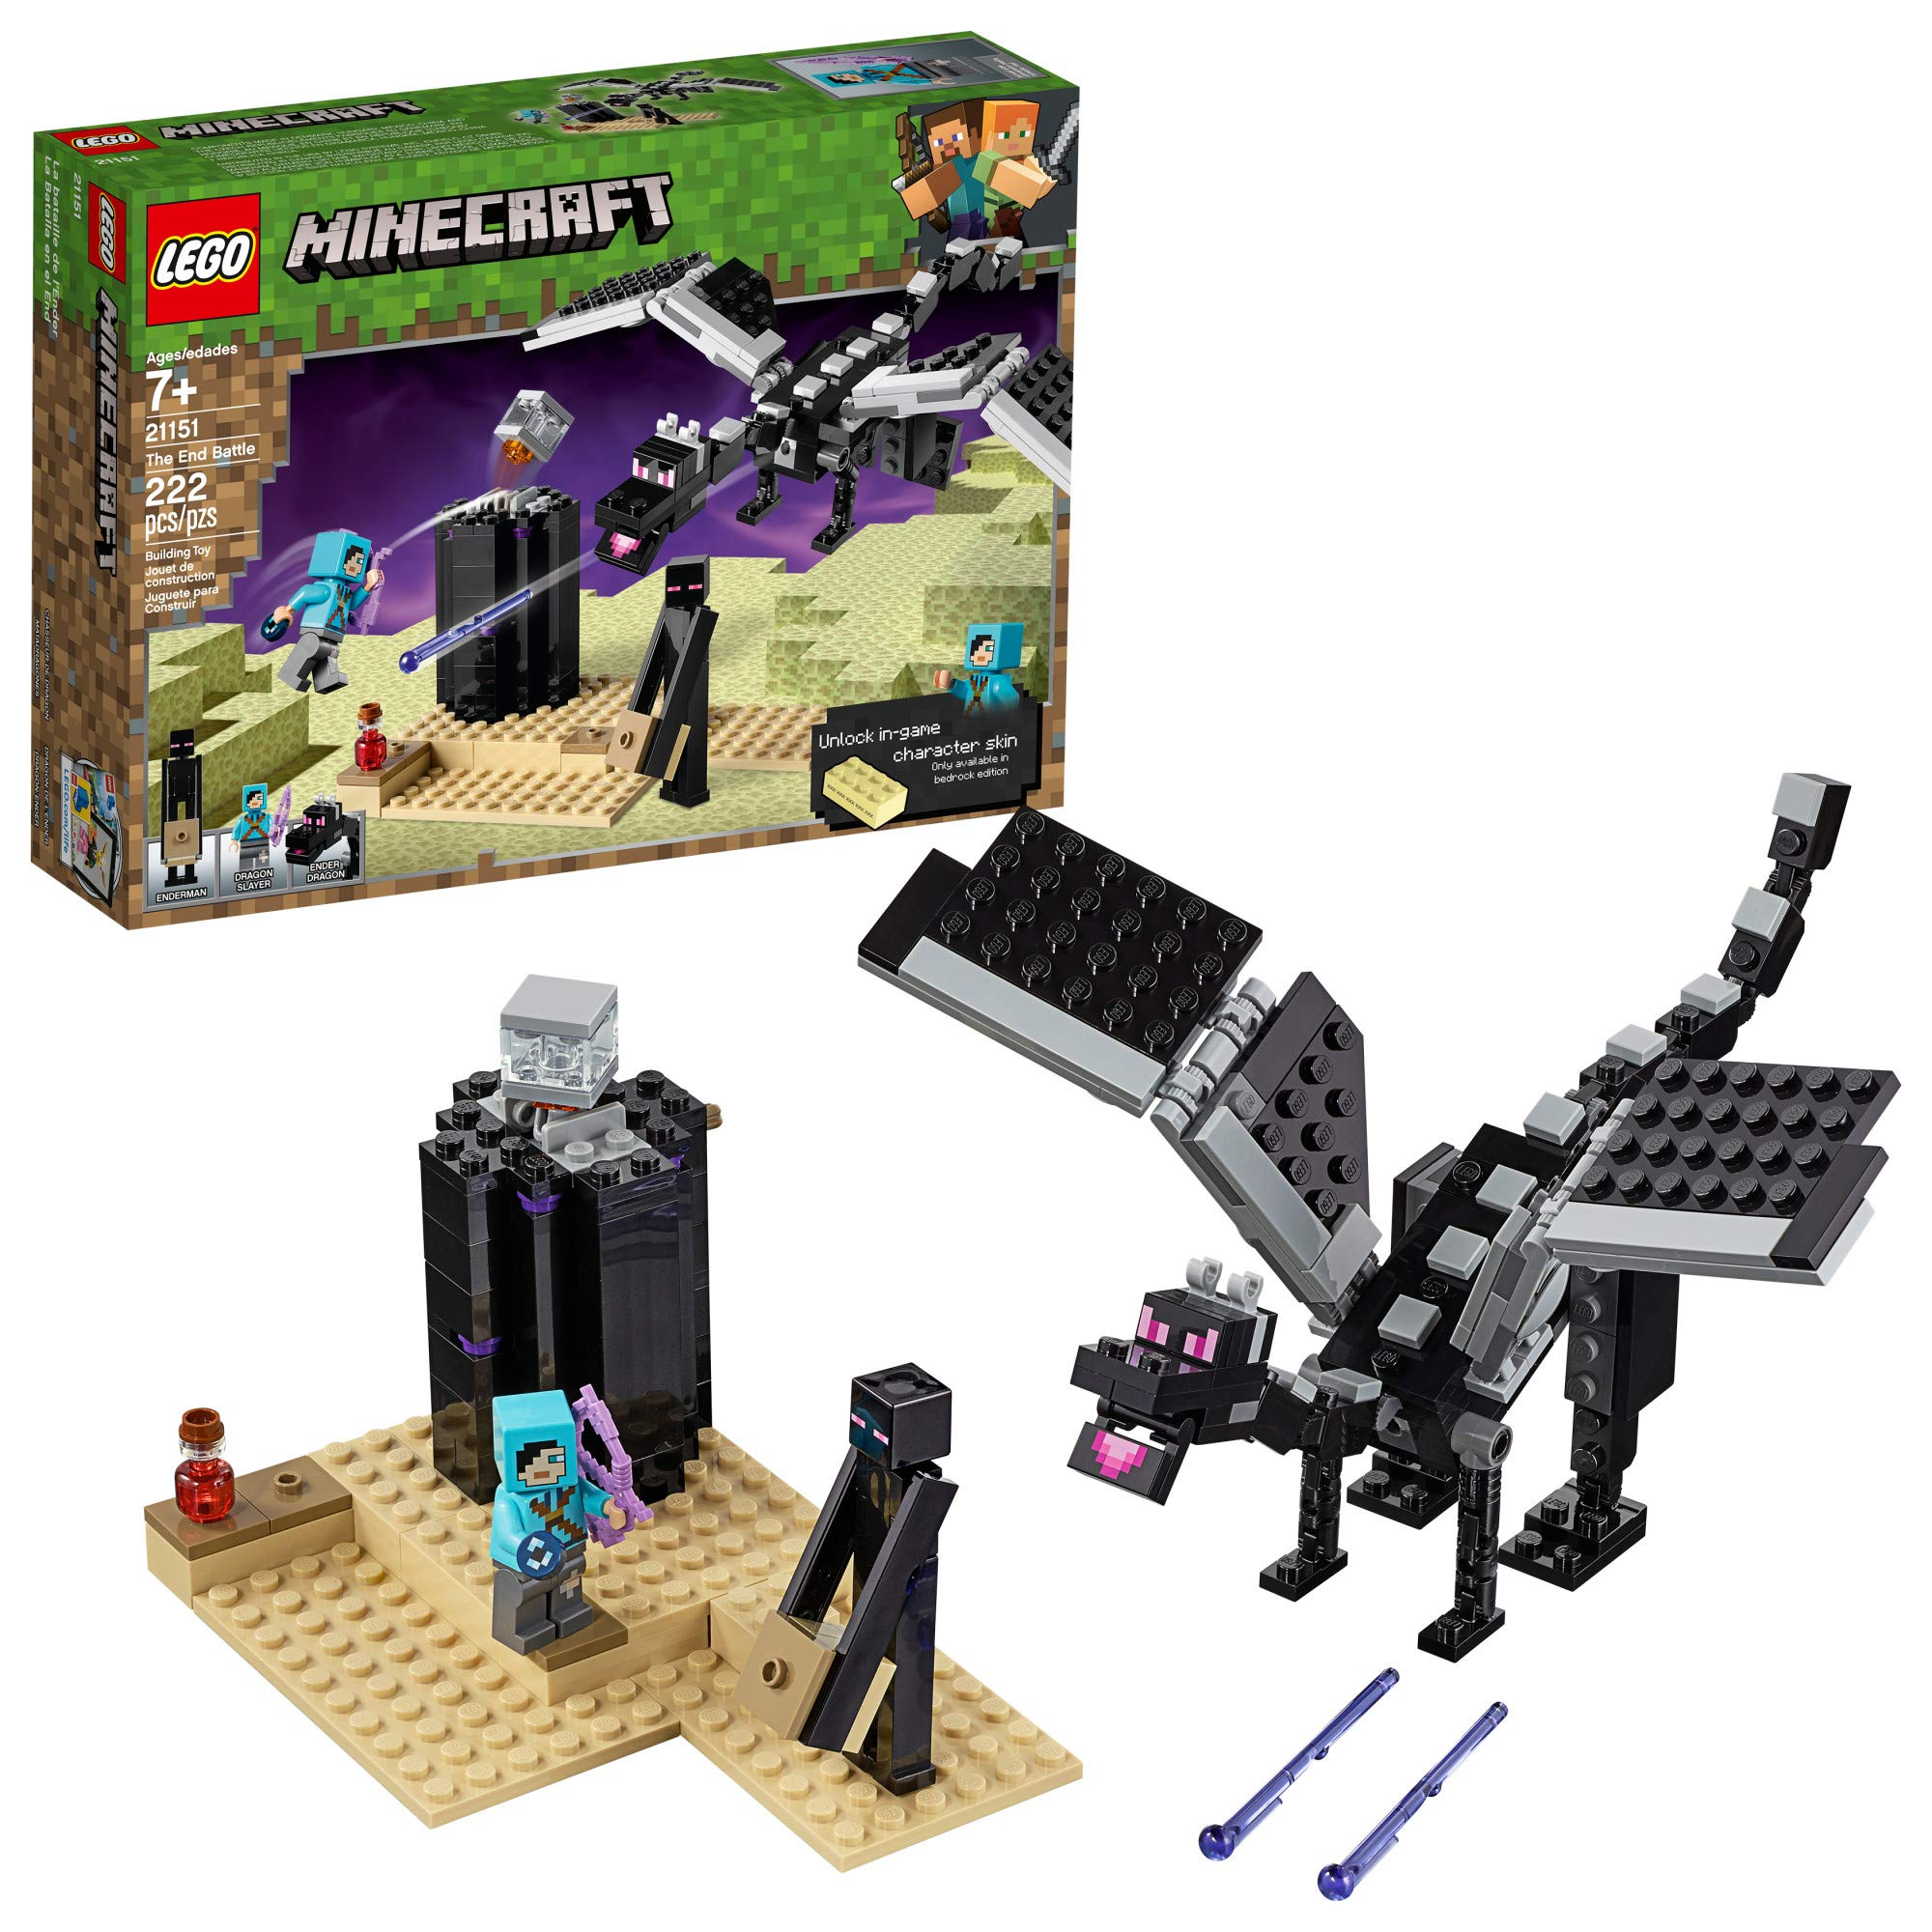 Minecraft Craftables Series Figure Chase Piece Ender Dragon Set 0f 10